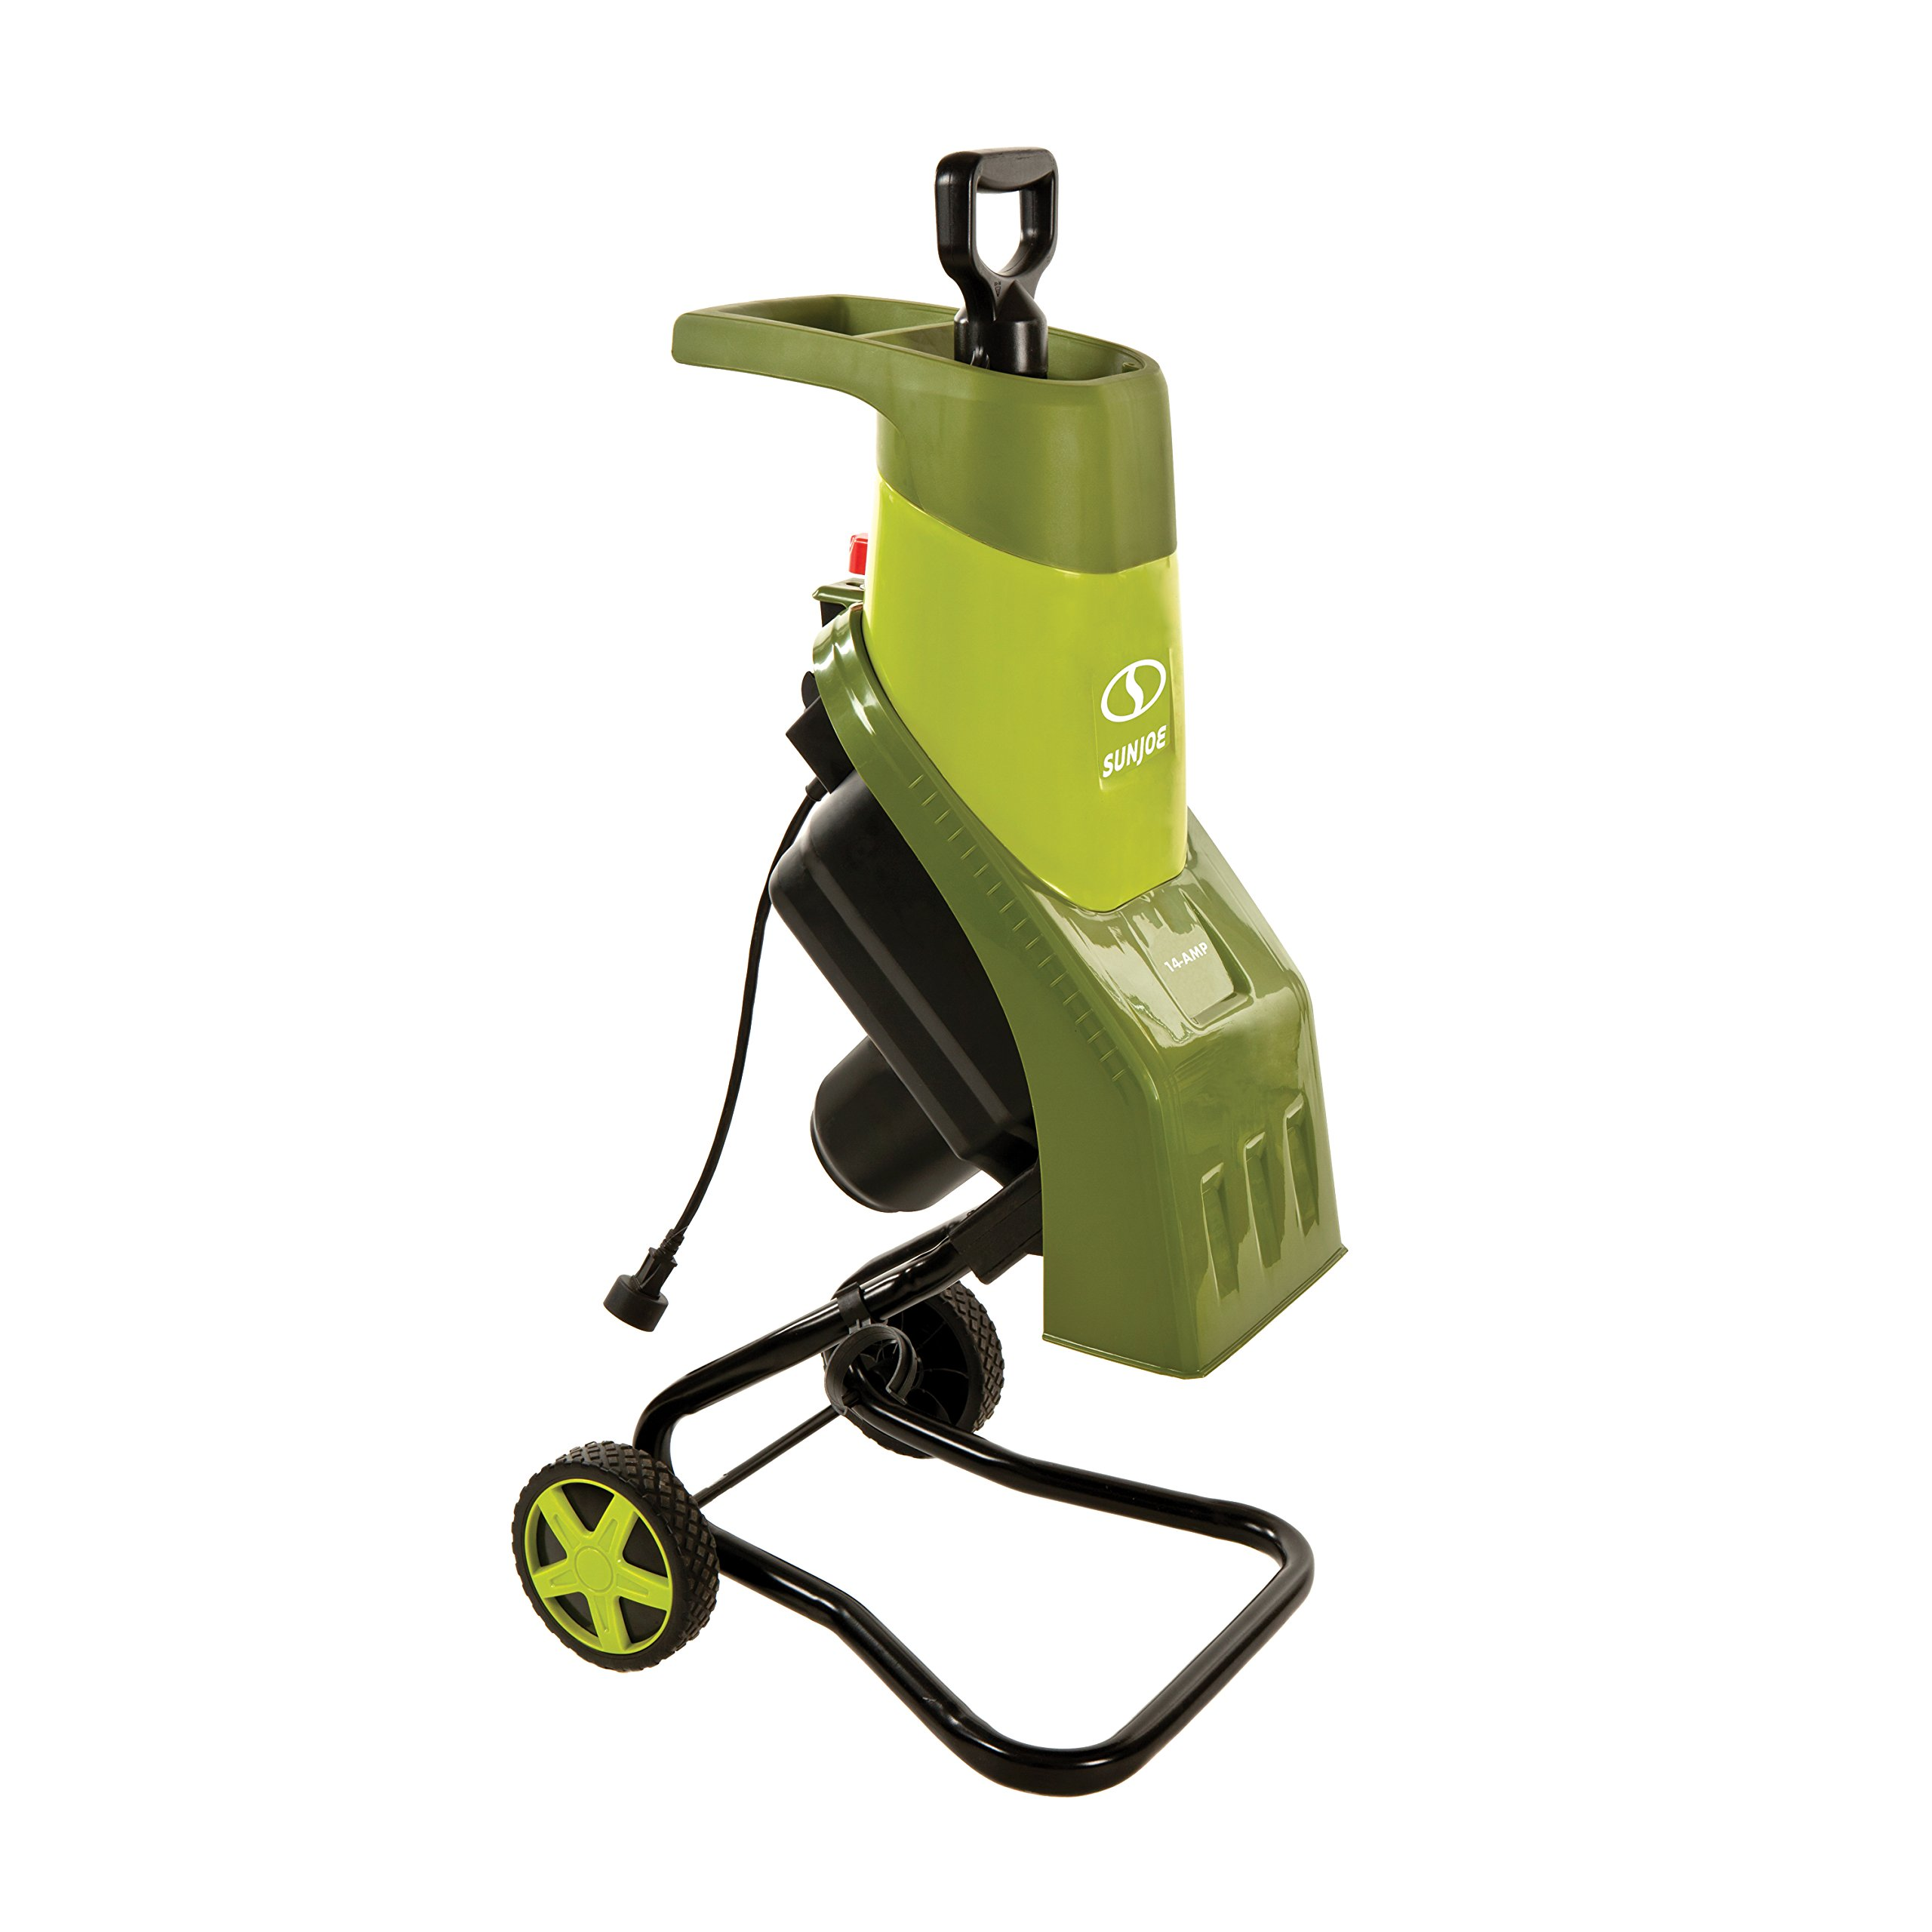 Sun Joe CJ601E 14-Amp Electric Wood Chipper/Shredder